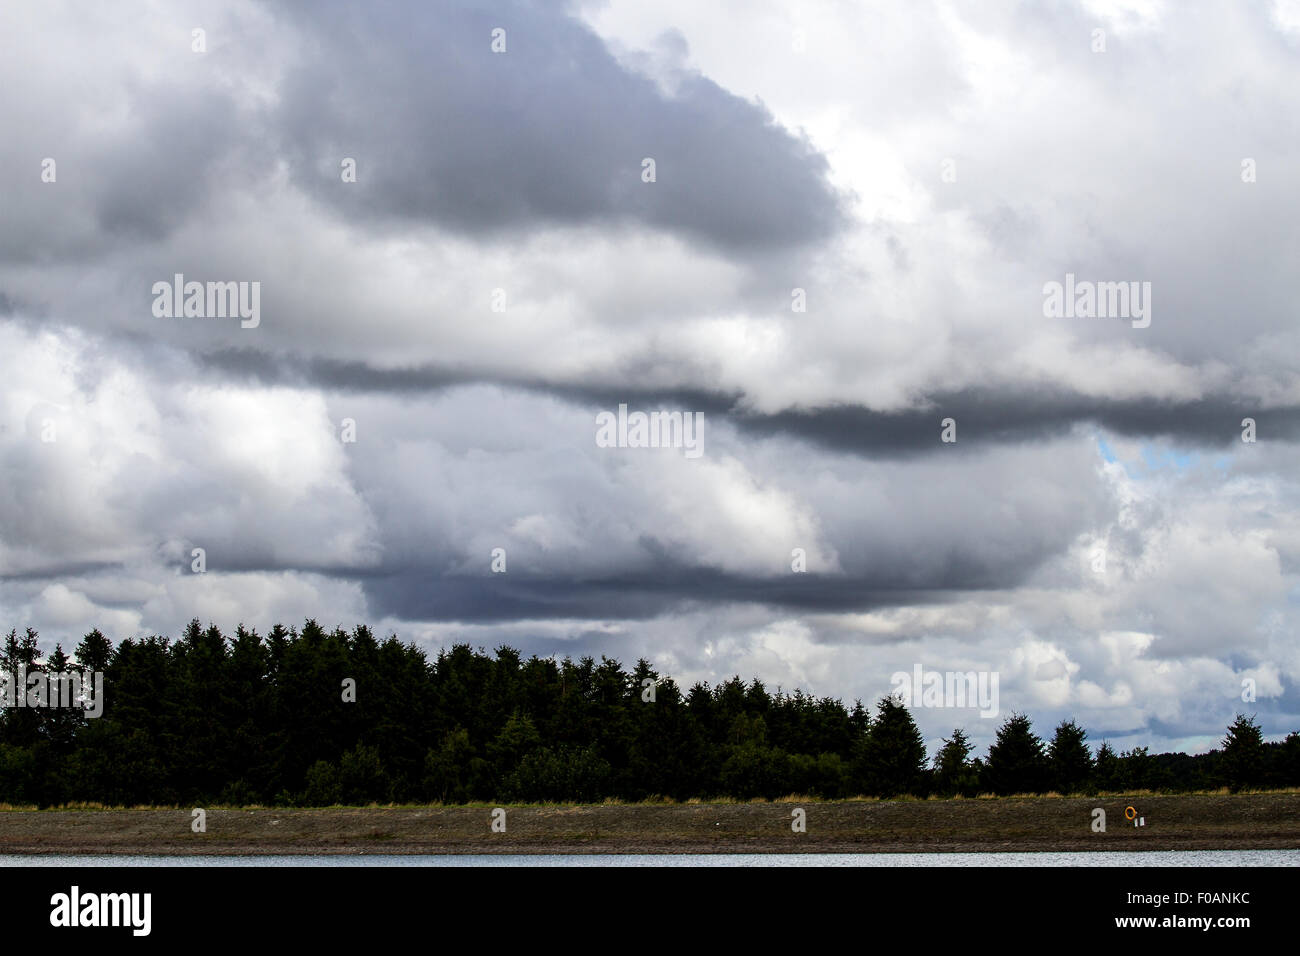 Dundee, Tayside, Scotland, UK, 11th August, 2015. Weather: A bright day with some sunshine at times, but also a - Stock Image